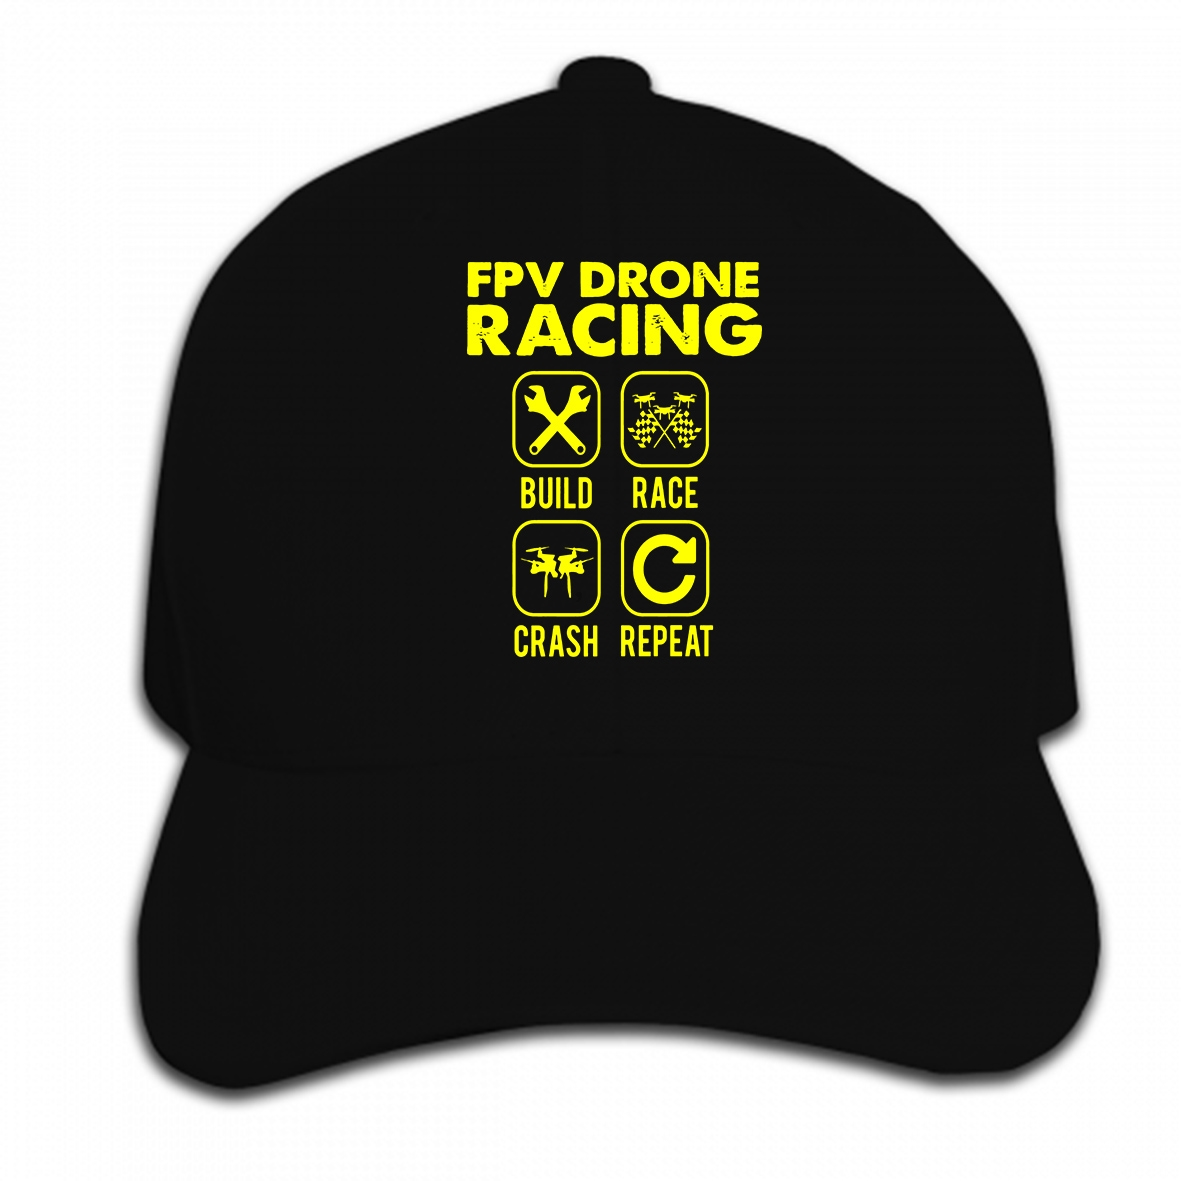 Custom Drone Racing Gates and Apparel | FPV by US |Drone Racing Hat